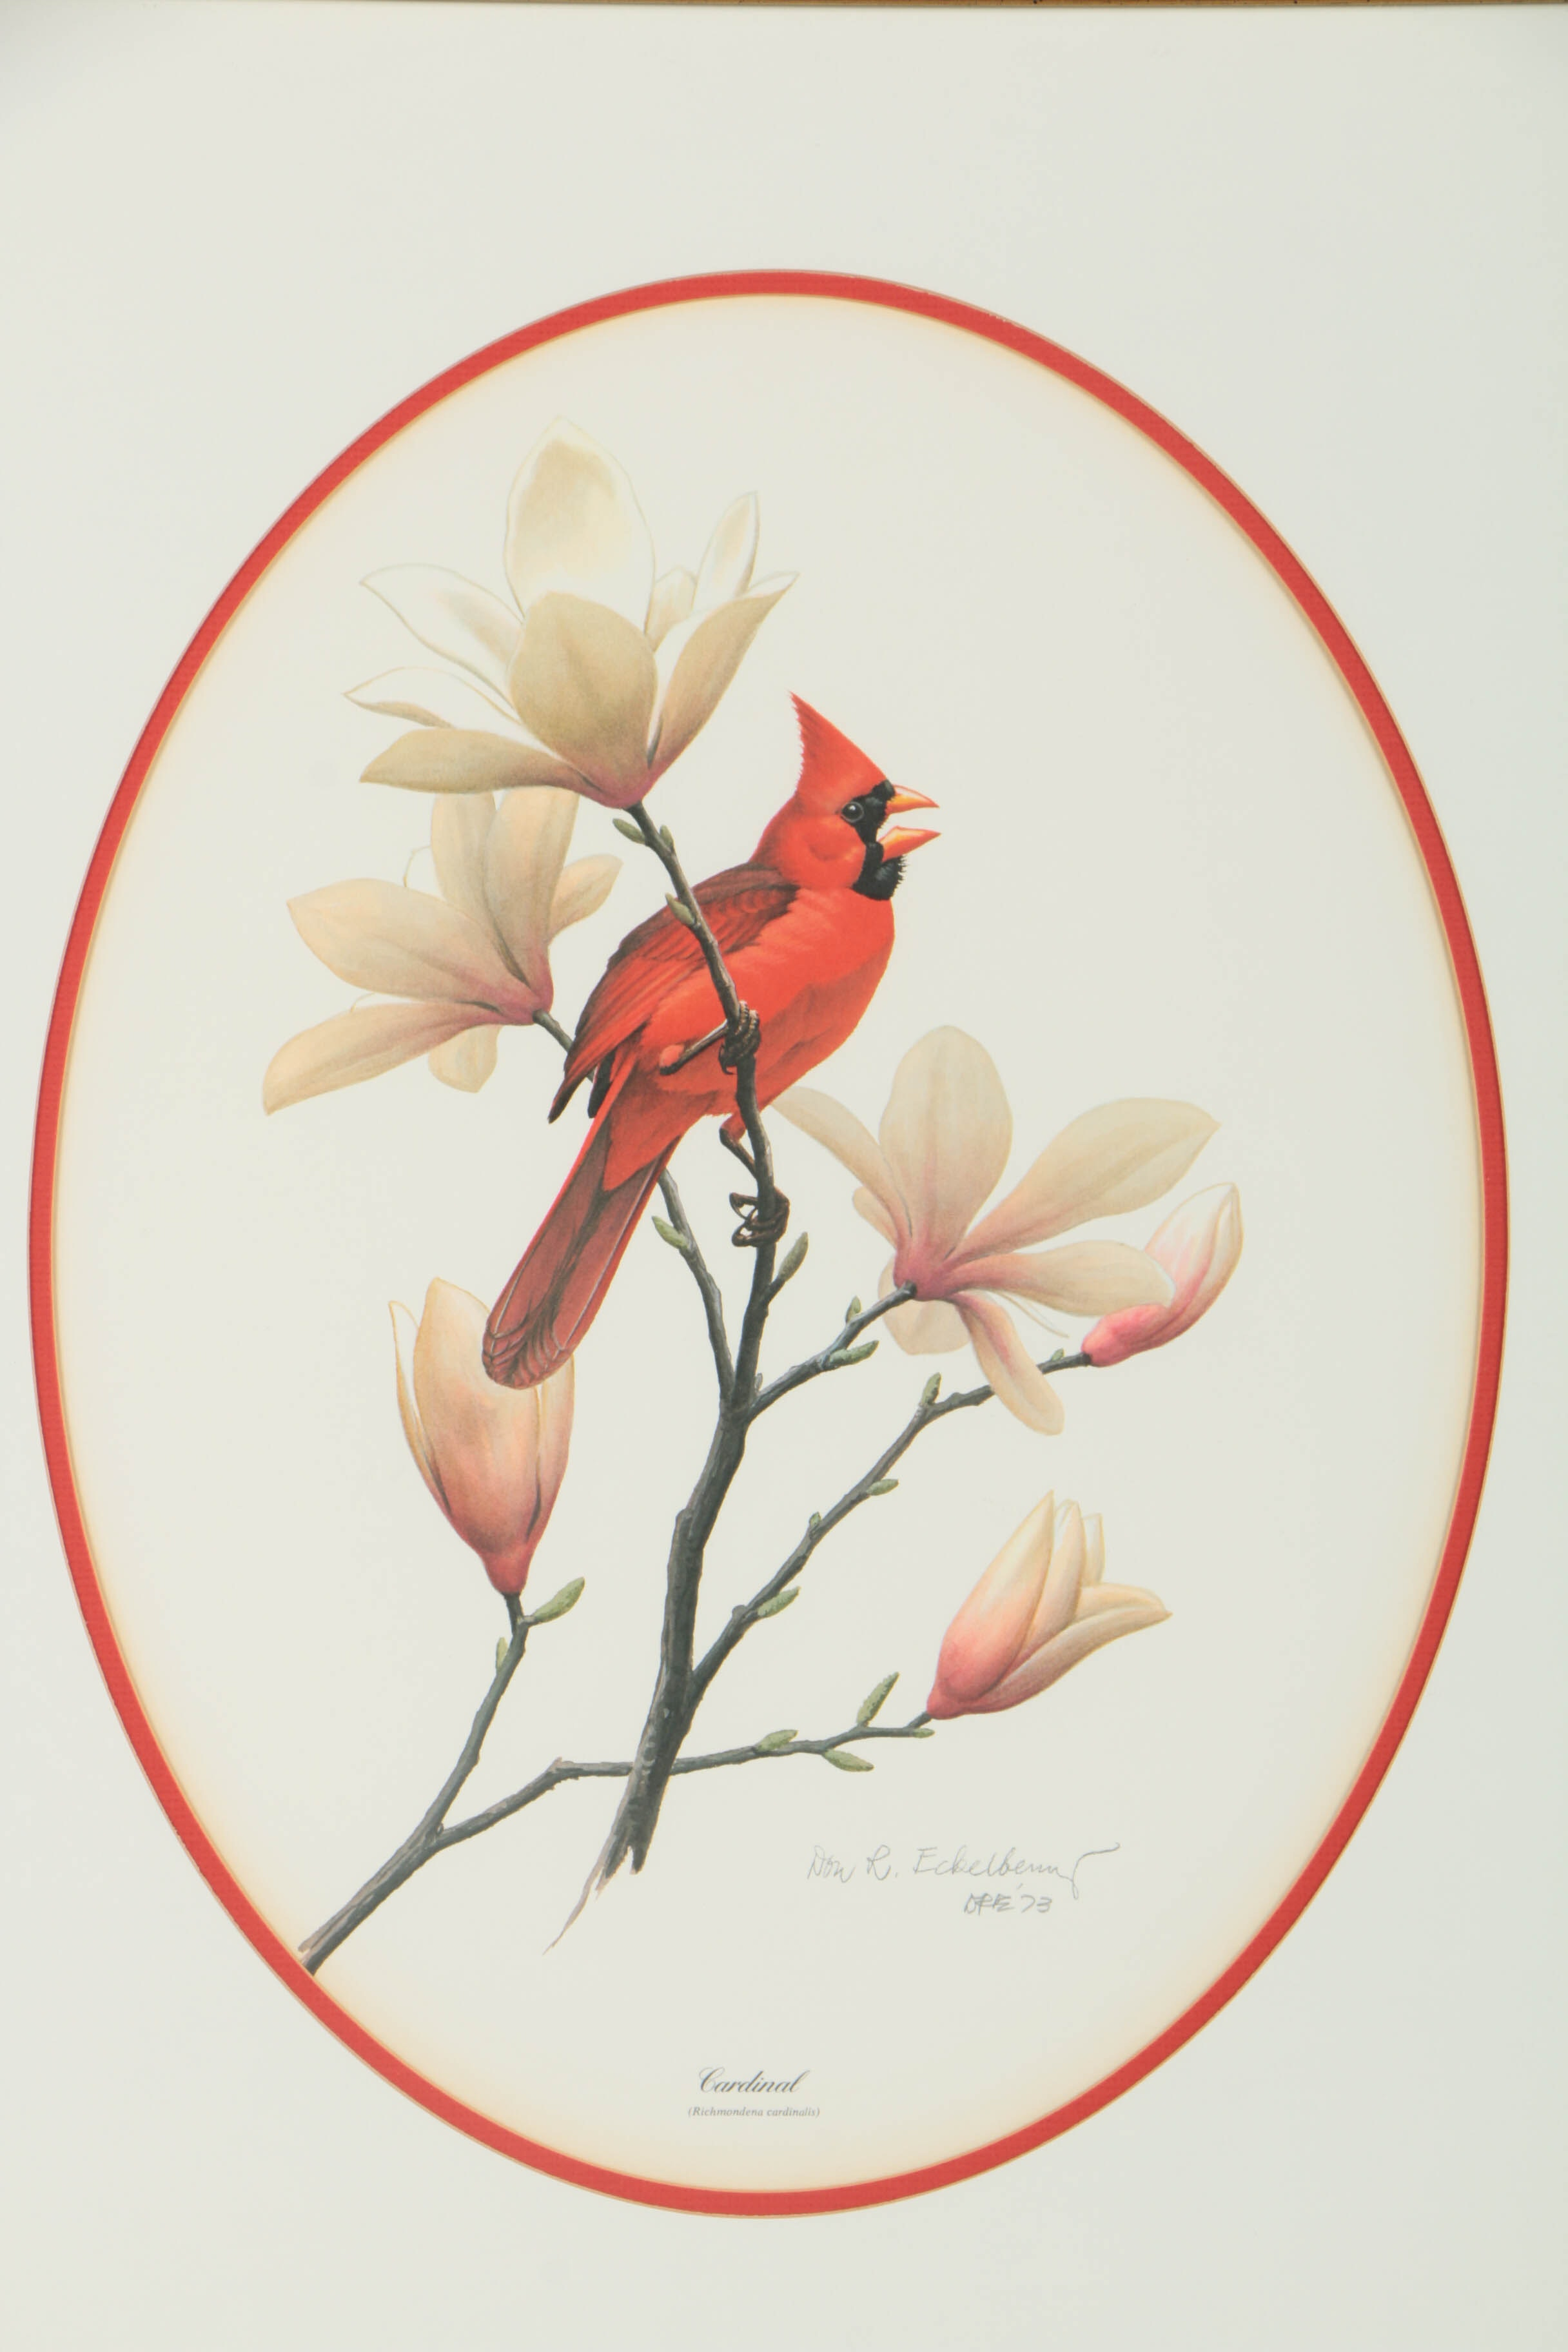 Don R Eckelberry Signed Offset Lithograph Quot Cardinal Quot Ebth